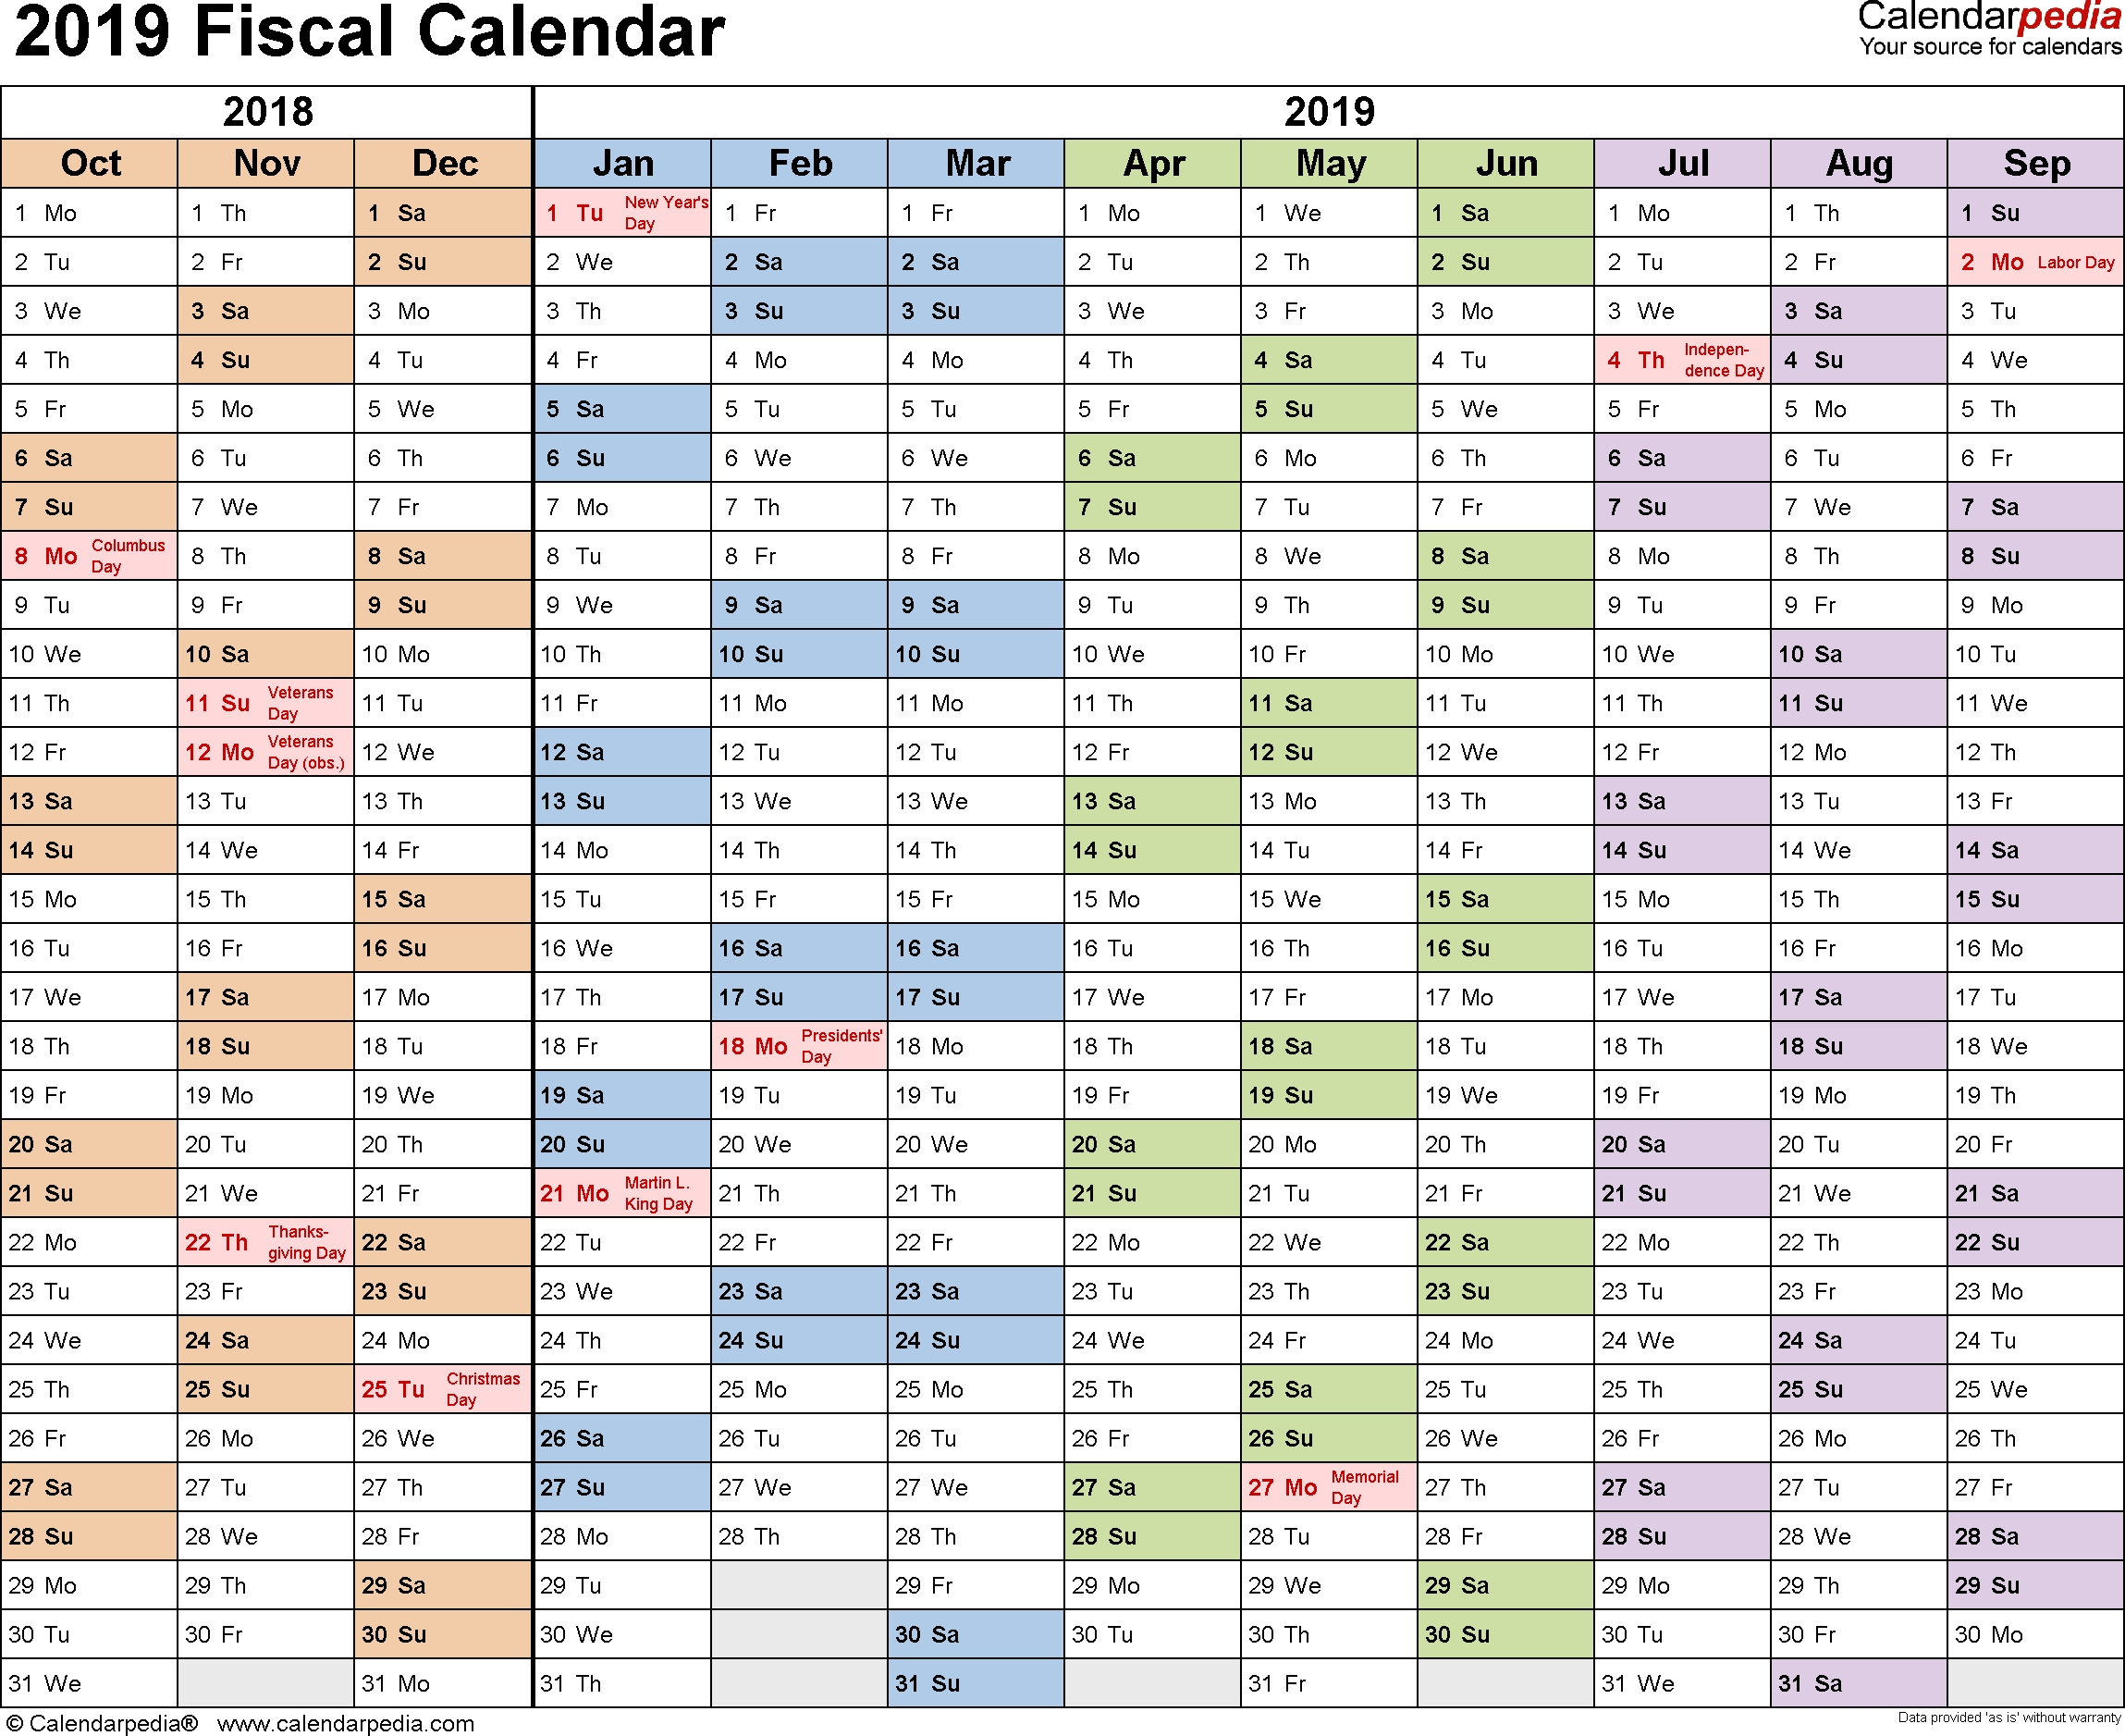 Fiscal Calendars 2019 - Free Printable Word Templates inside 2020 4-4-5 Fiscal Accouting Calendar